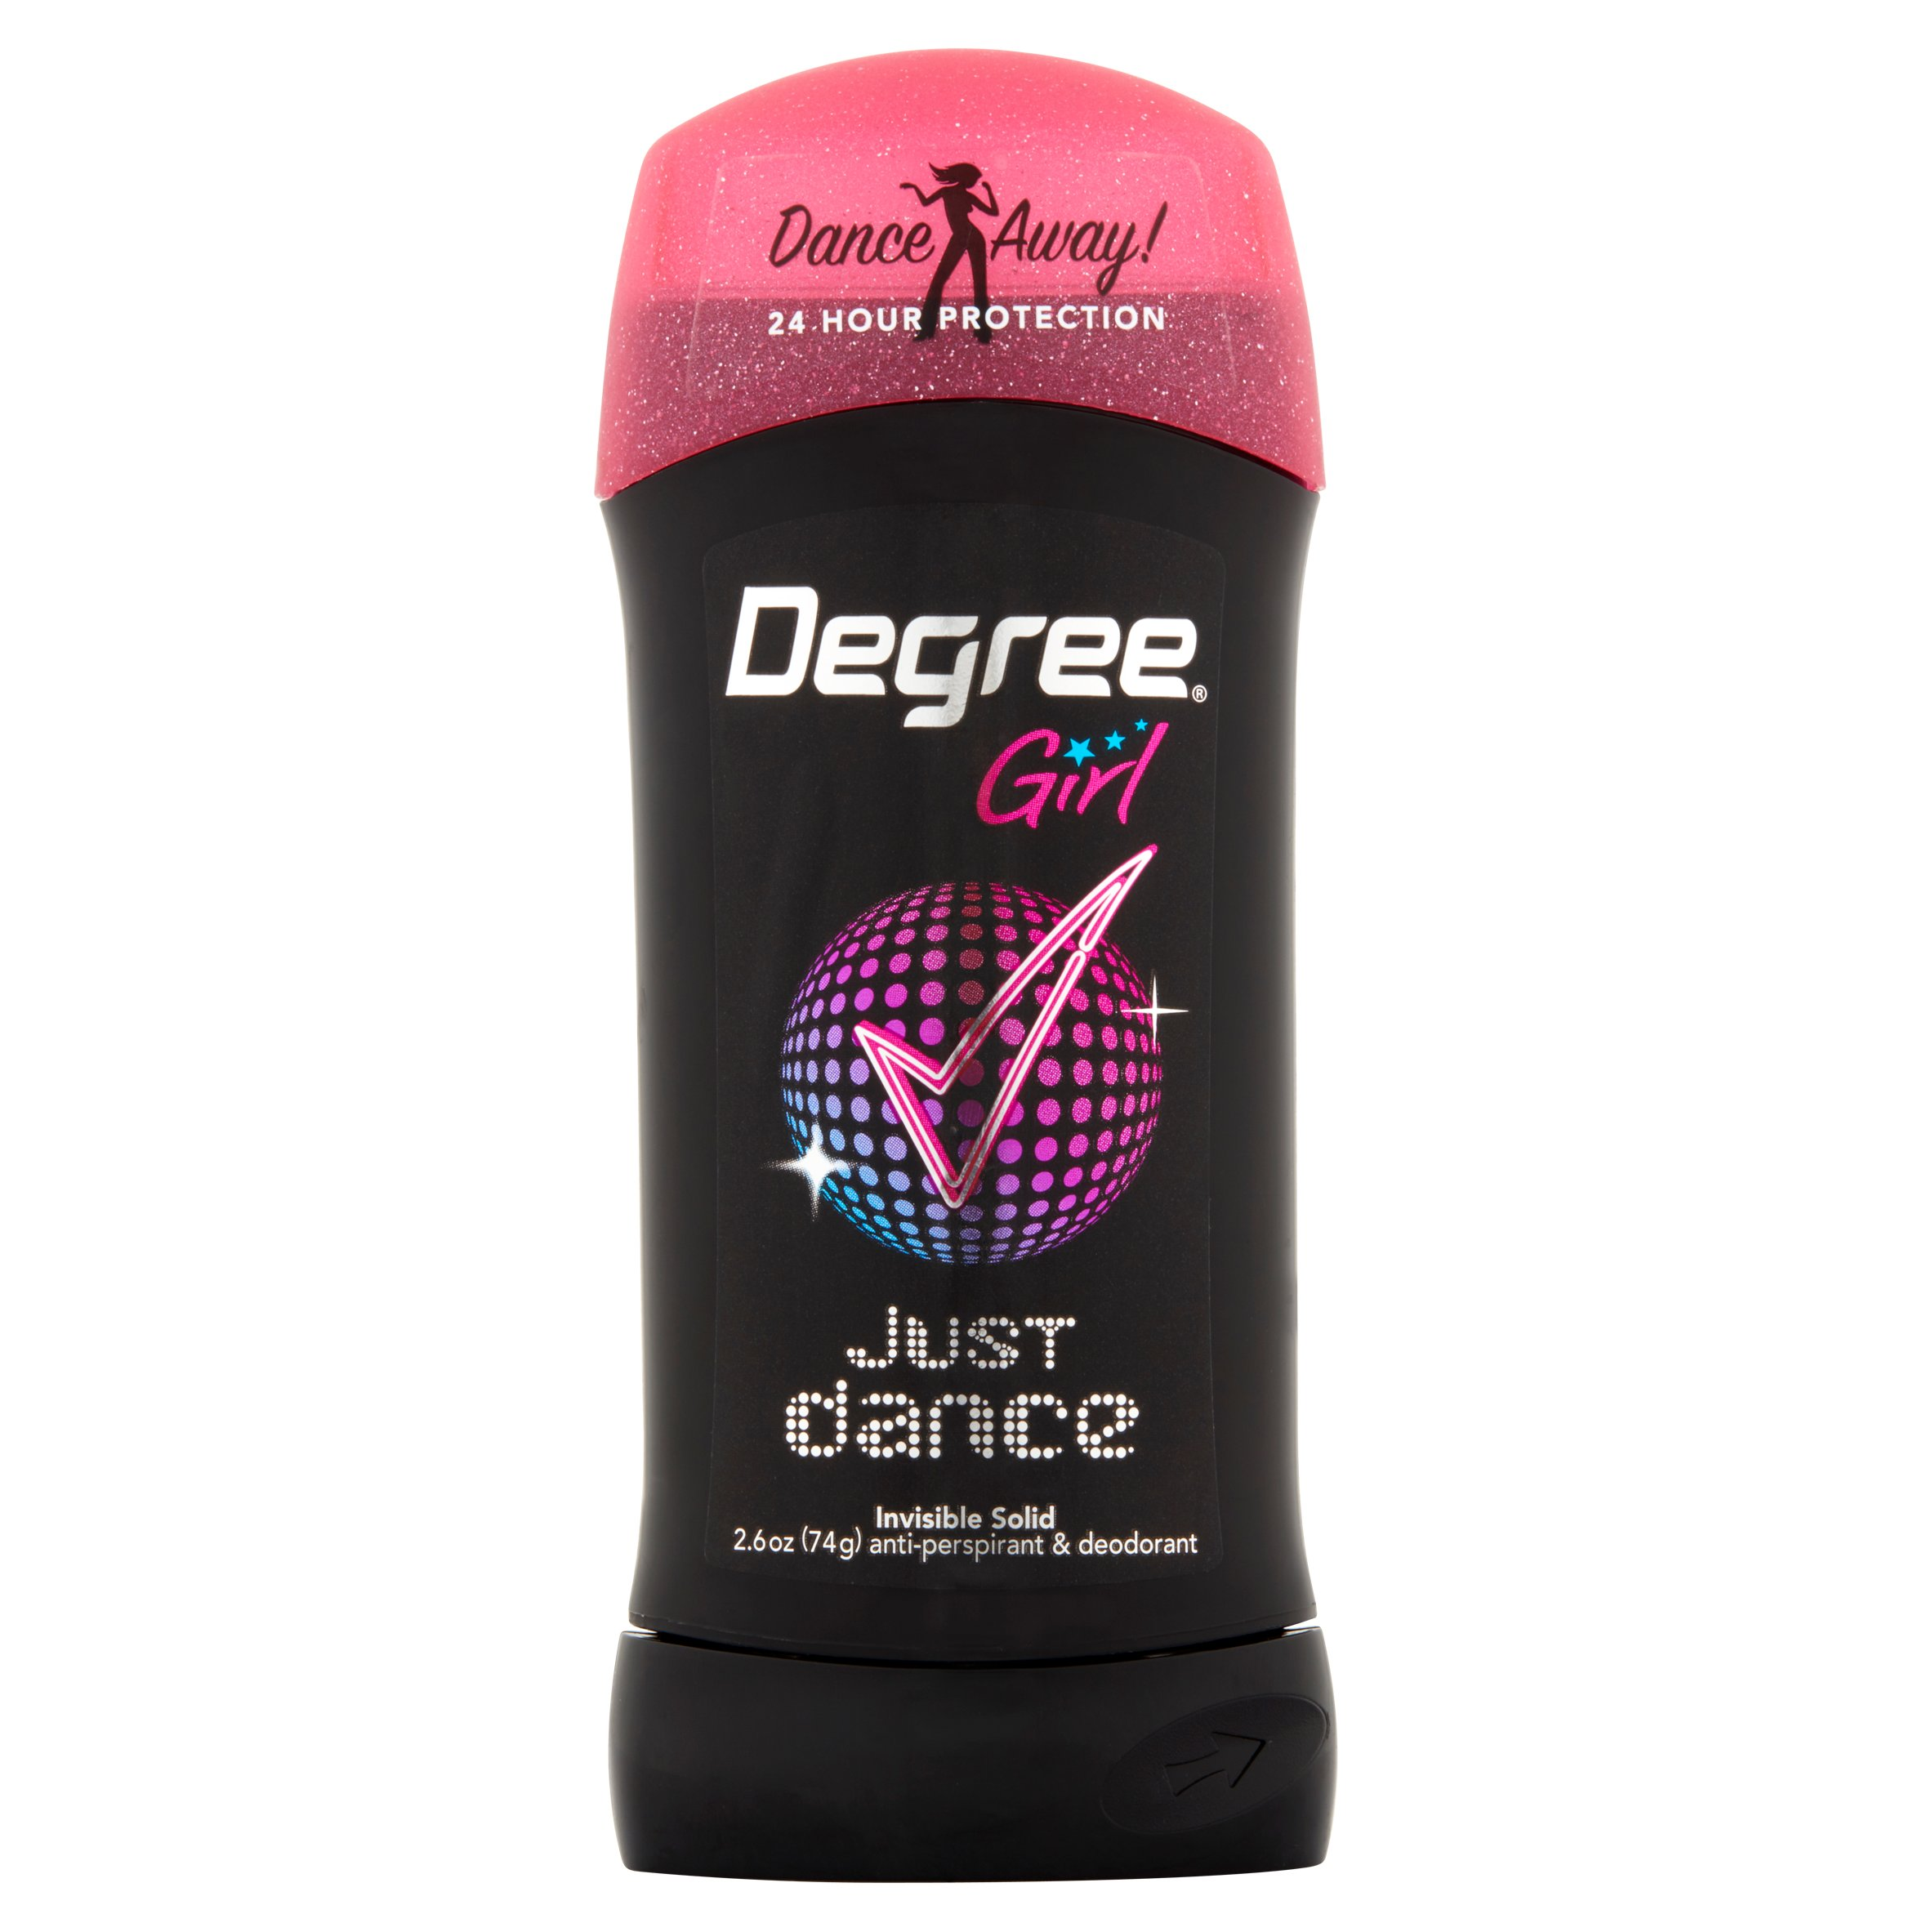 Degree Dry Protection Antiperspirant Deodorant Just Dance 2.6 oz